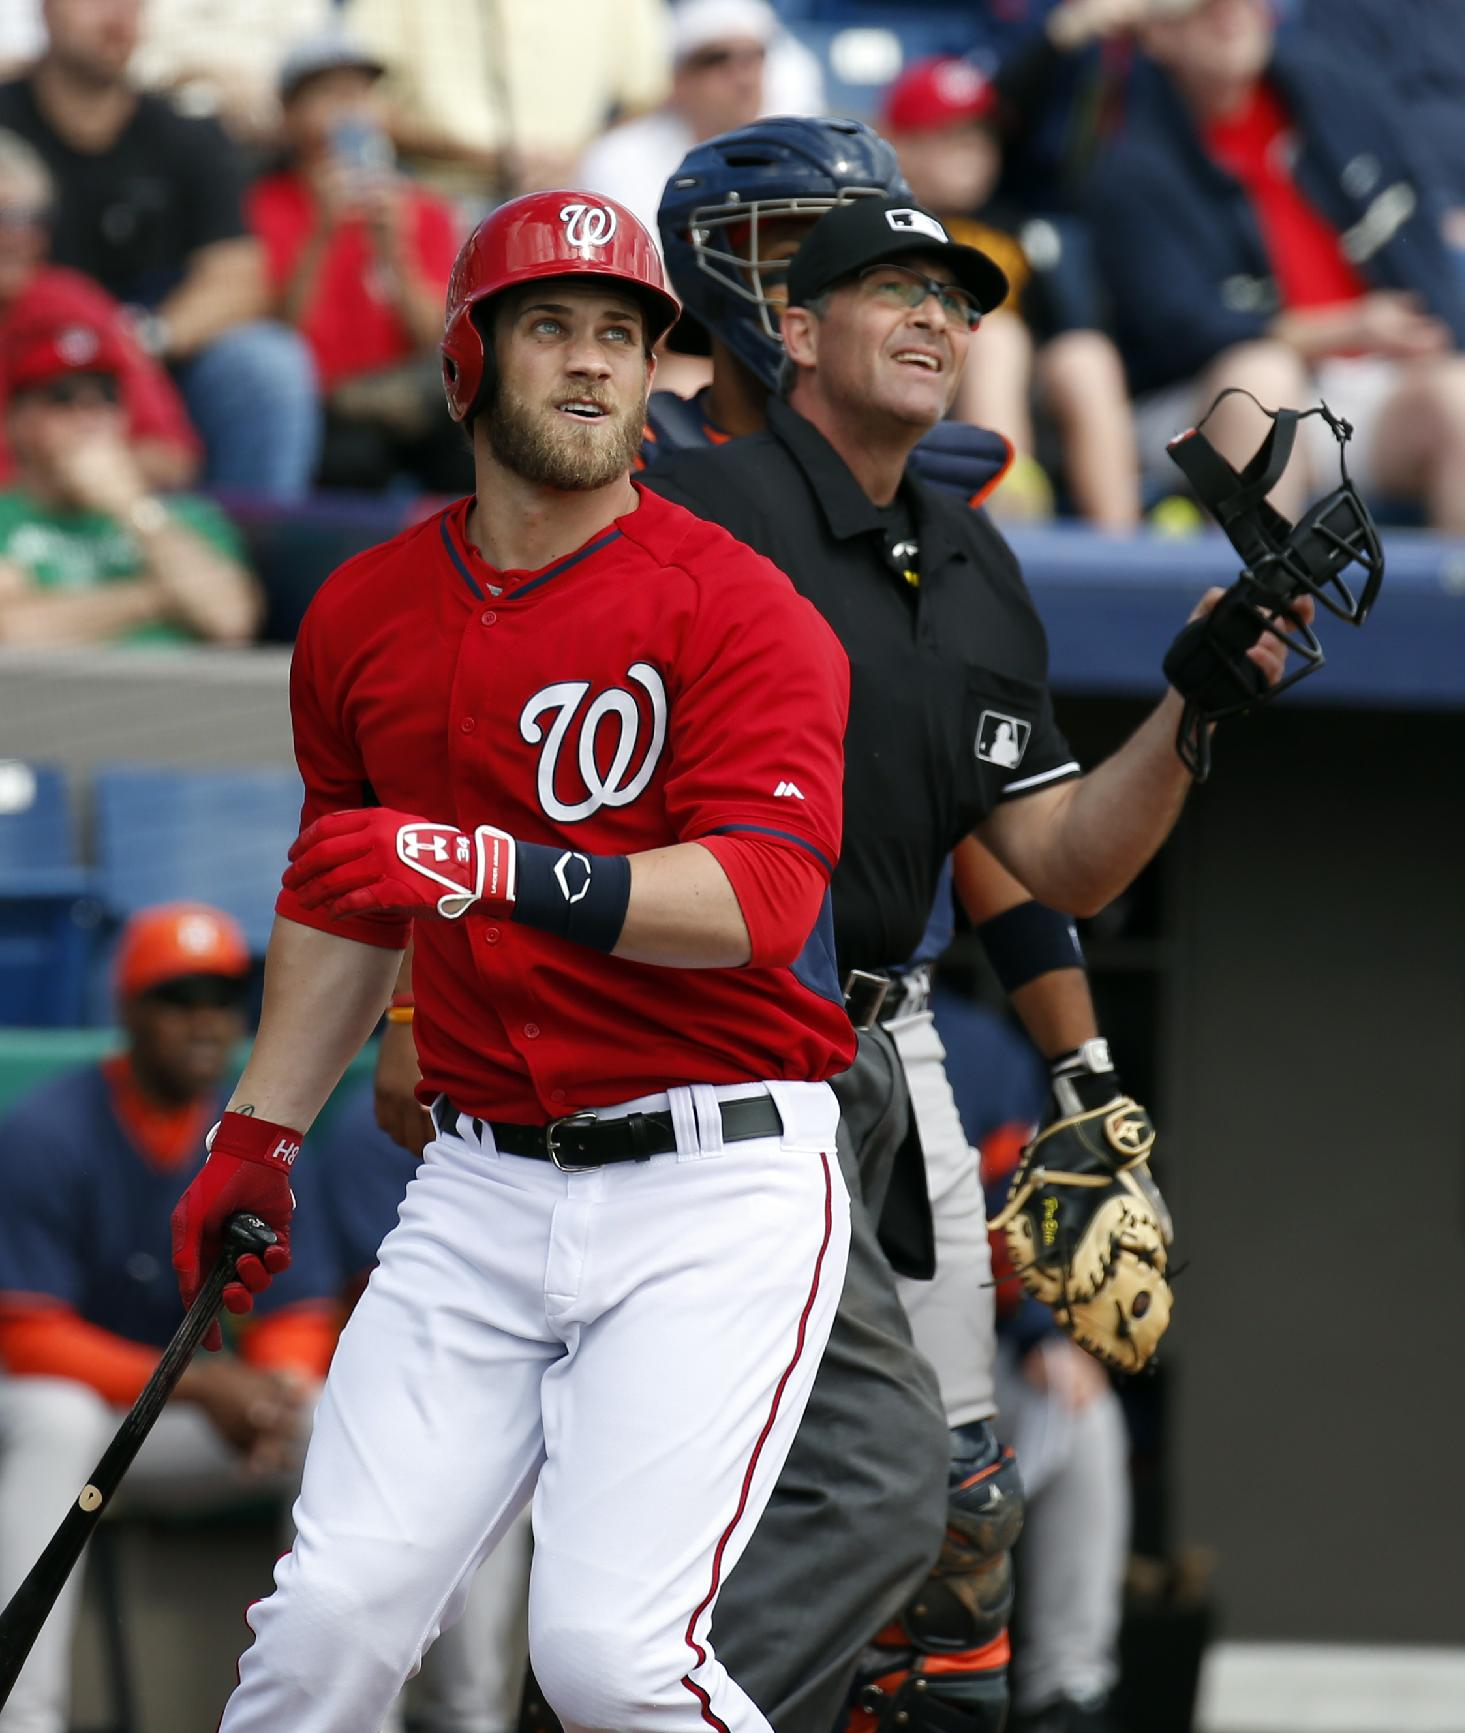 Washington Nationals' Bryce Harper, left, watches his two-run homer with home plate umpire Paul Nauert in the first inning of a spring exhibition baseball game against the Houston Astros, Friday, March 7, 2014, in Viera, Fla